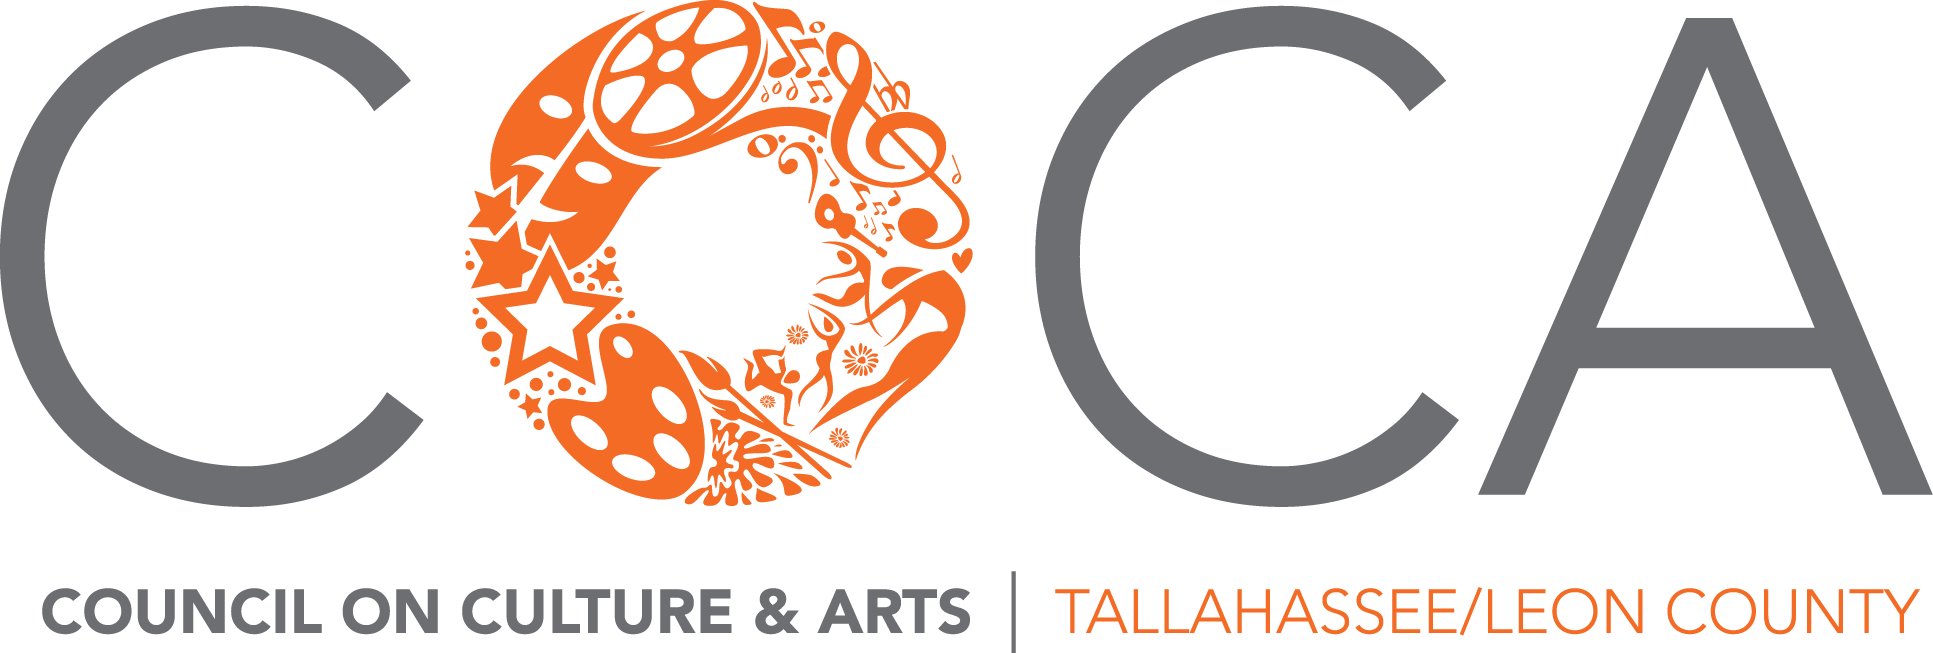 Council on Culture & Arts - Tallahassee County